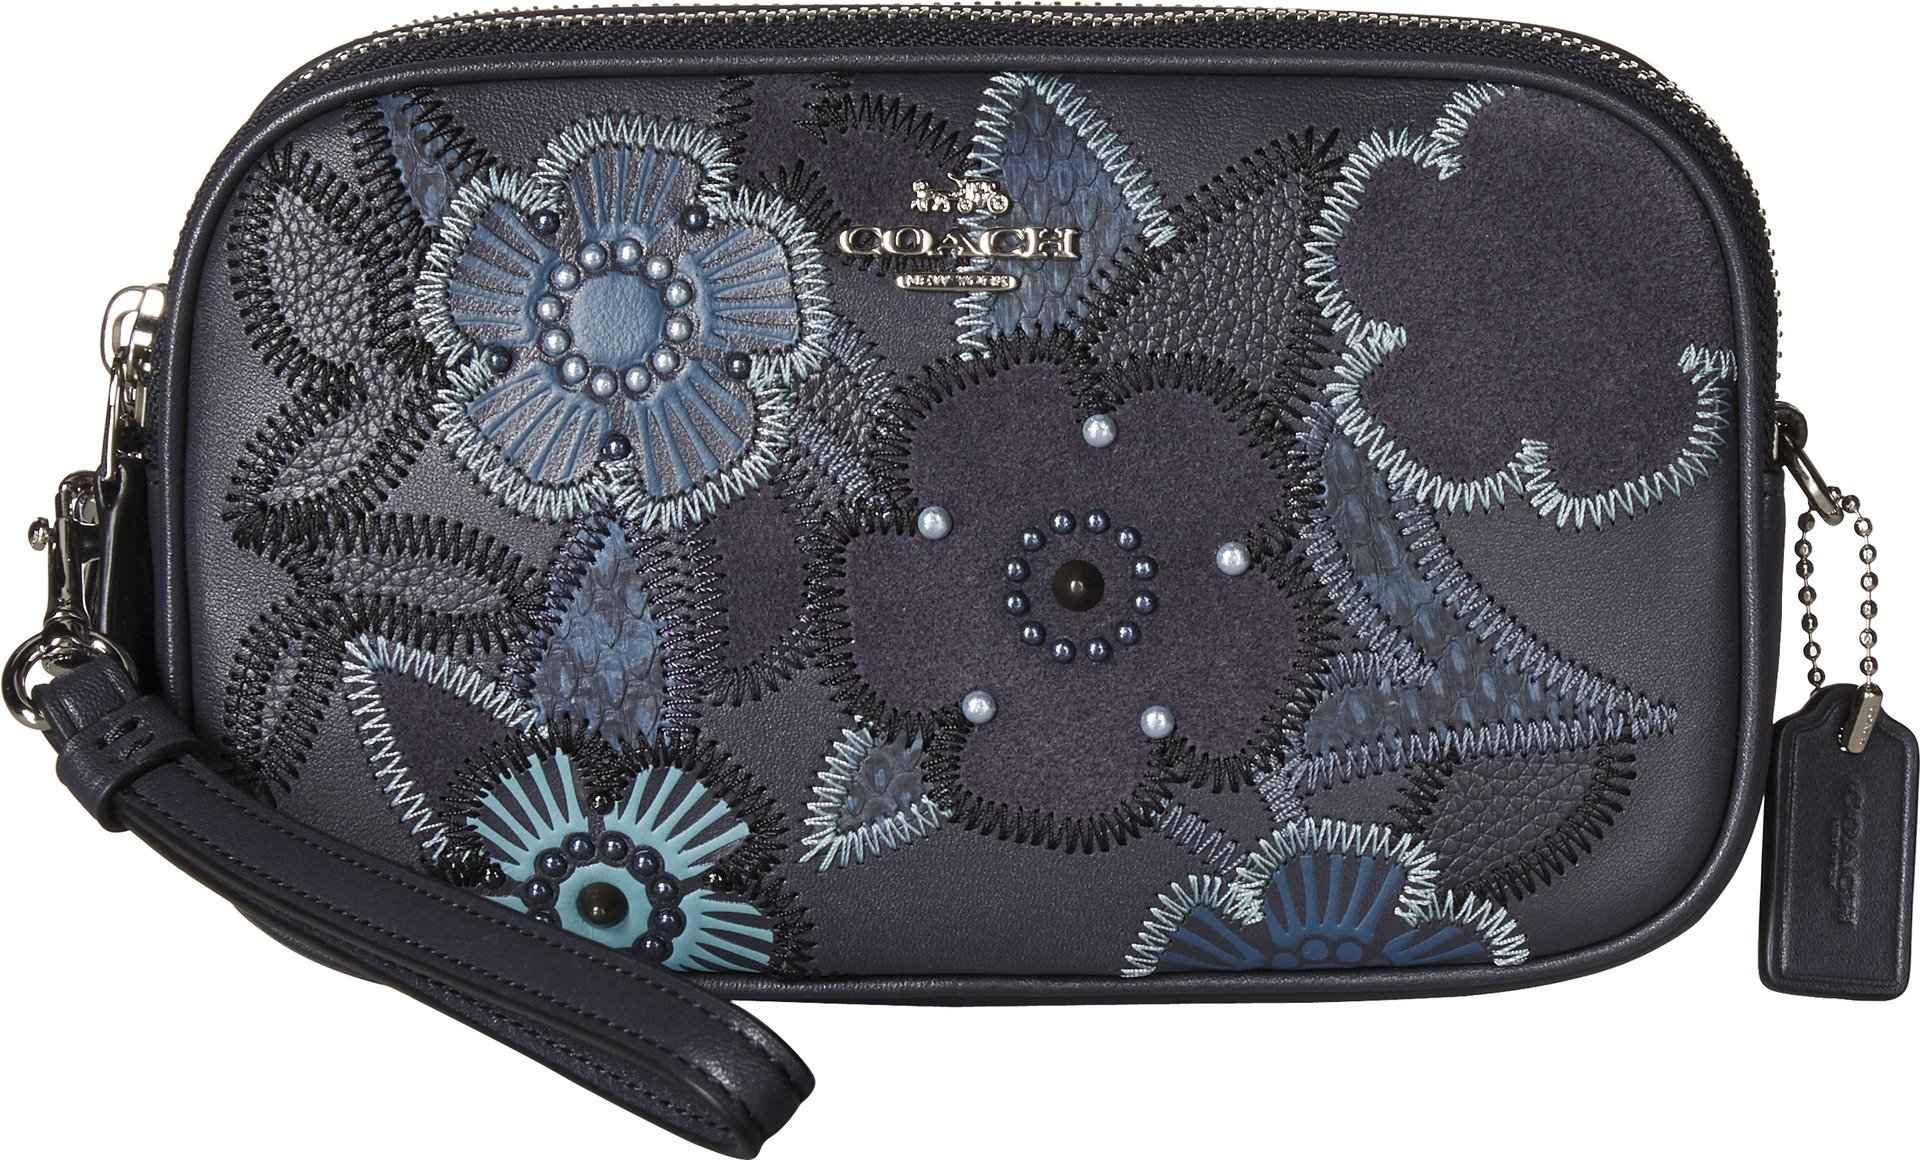 COACH Women's Crossbody Clutch With Patchwork Tea Rose And Snakeskin Detail Sv/Navy Multi One Size